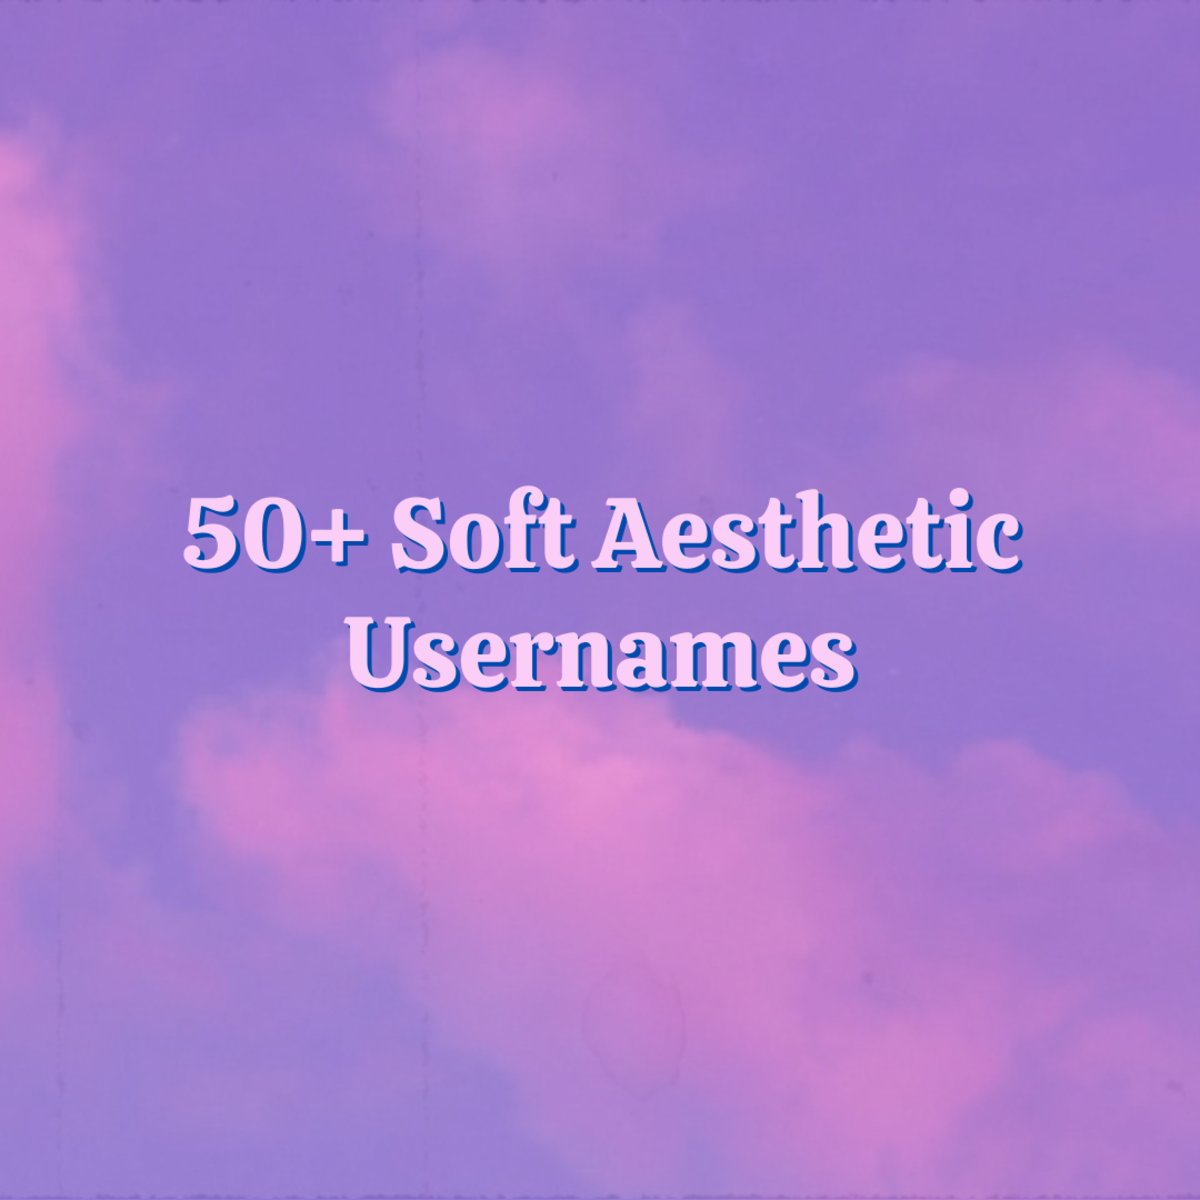 Discover over 50 soft aesthetic usernames and ideas in this ultimate list!